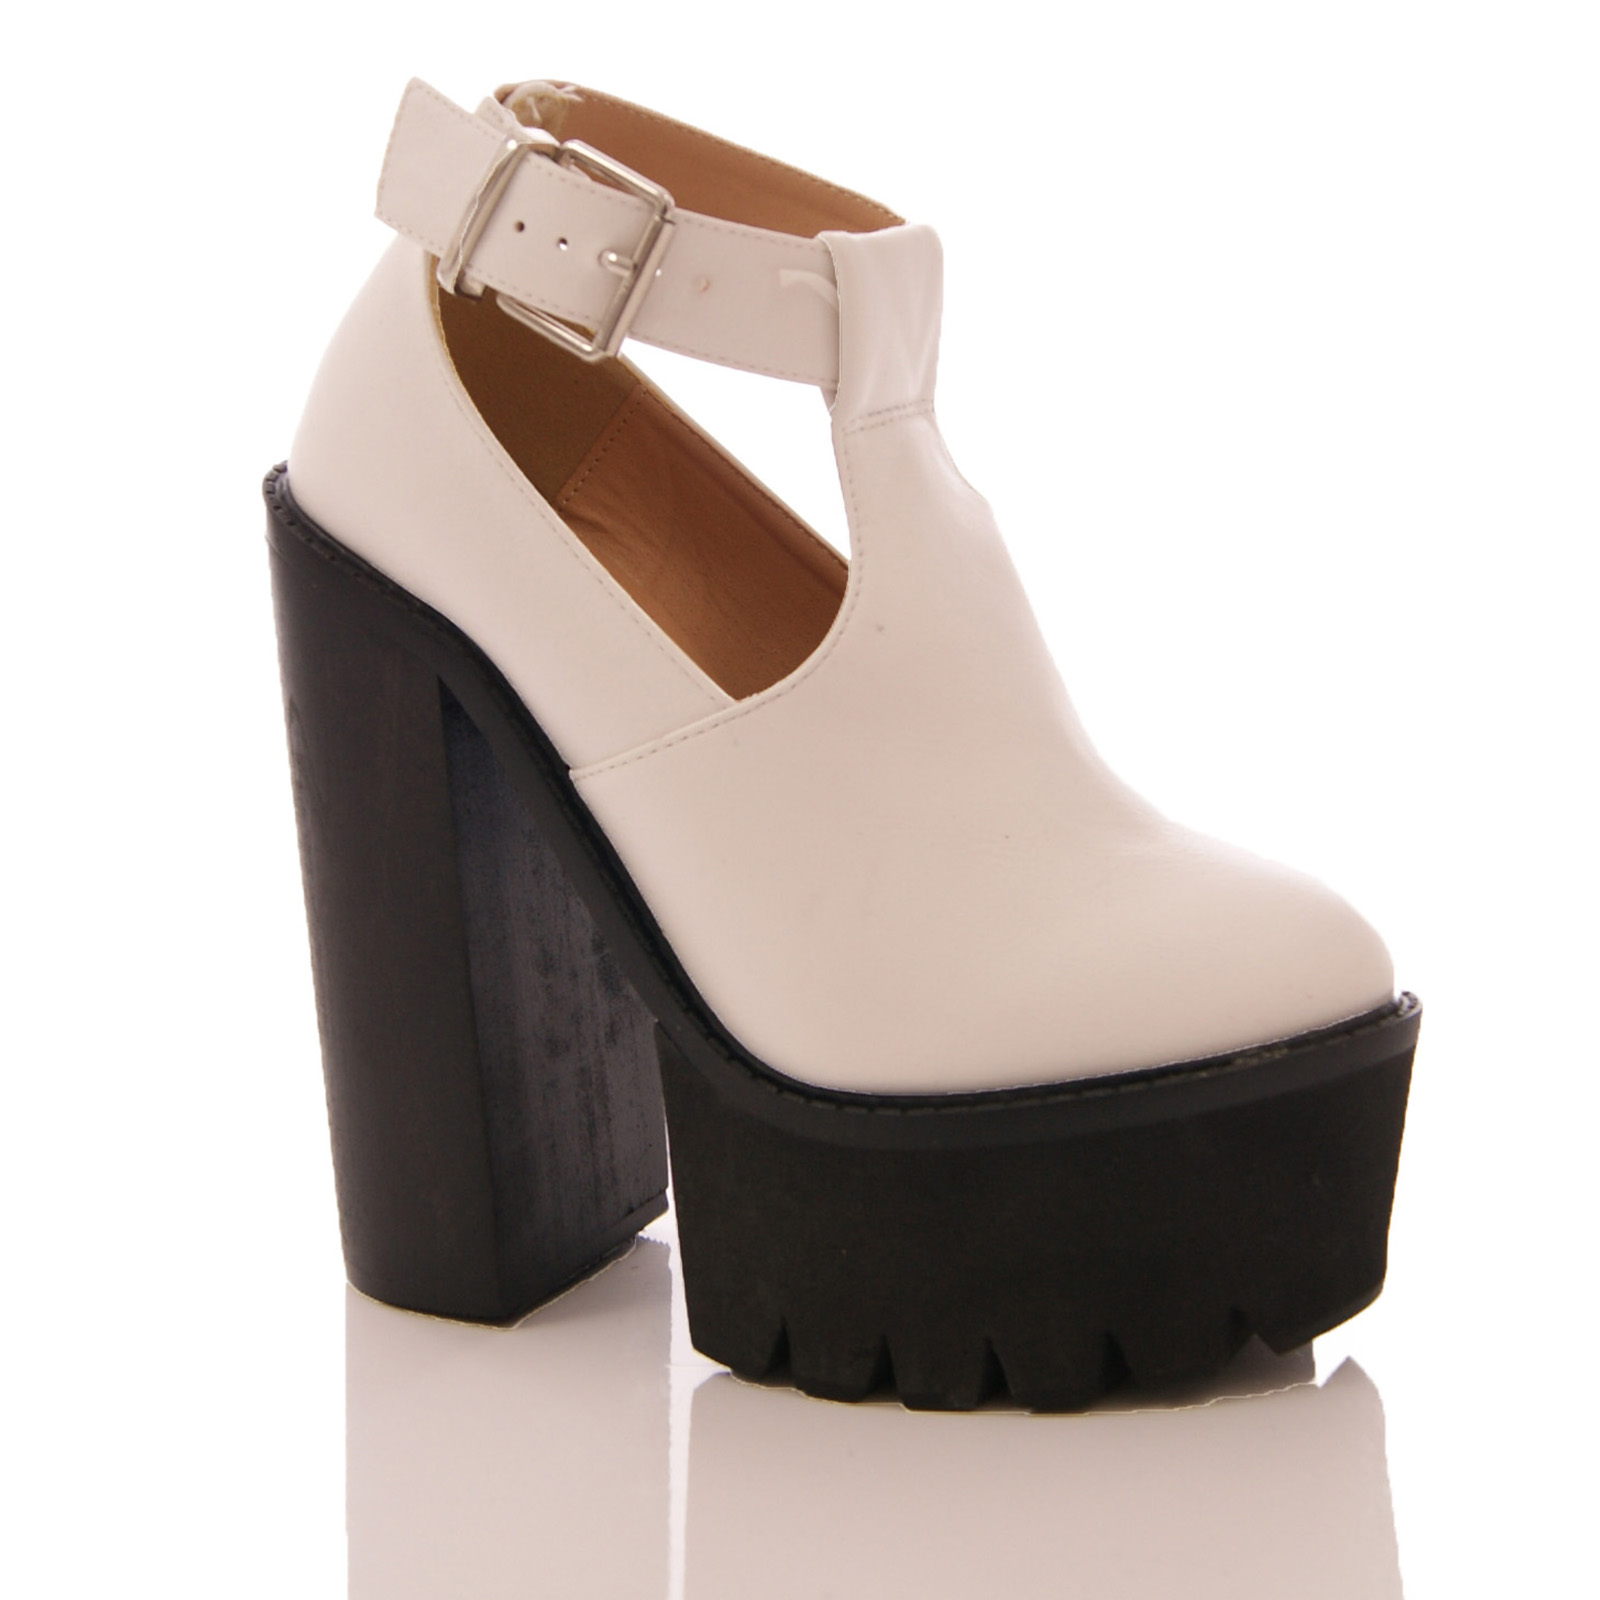 LADIES-WOMENS-ANKLE-PLATFORM-HIGH-BLOCK-HEEL-CUT-OUT-BOOTS-SHOES-BLOGGERS-SIZE